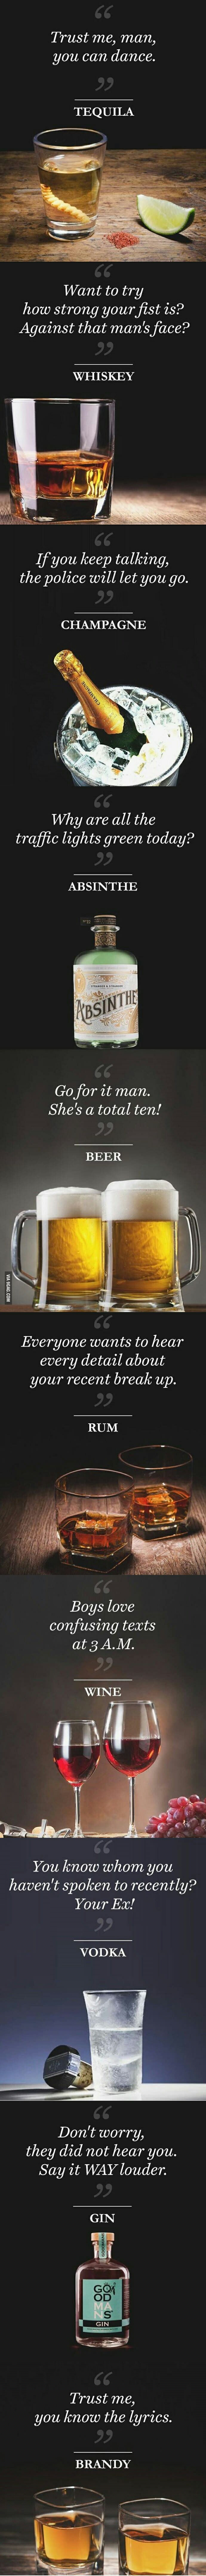 Alcohol... - 9GAG                                                                                                                                                     More